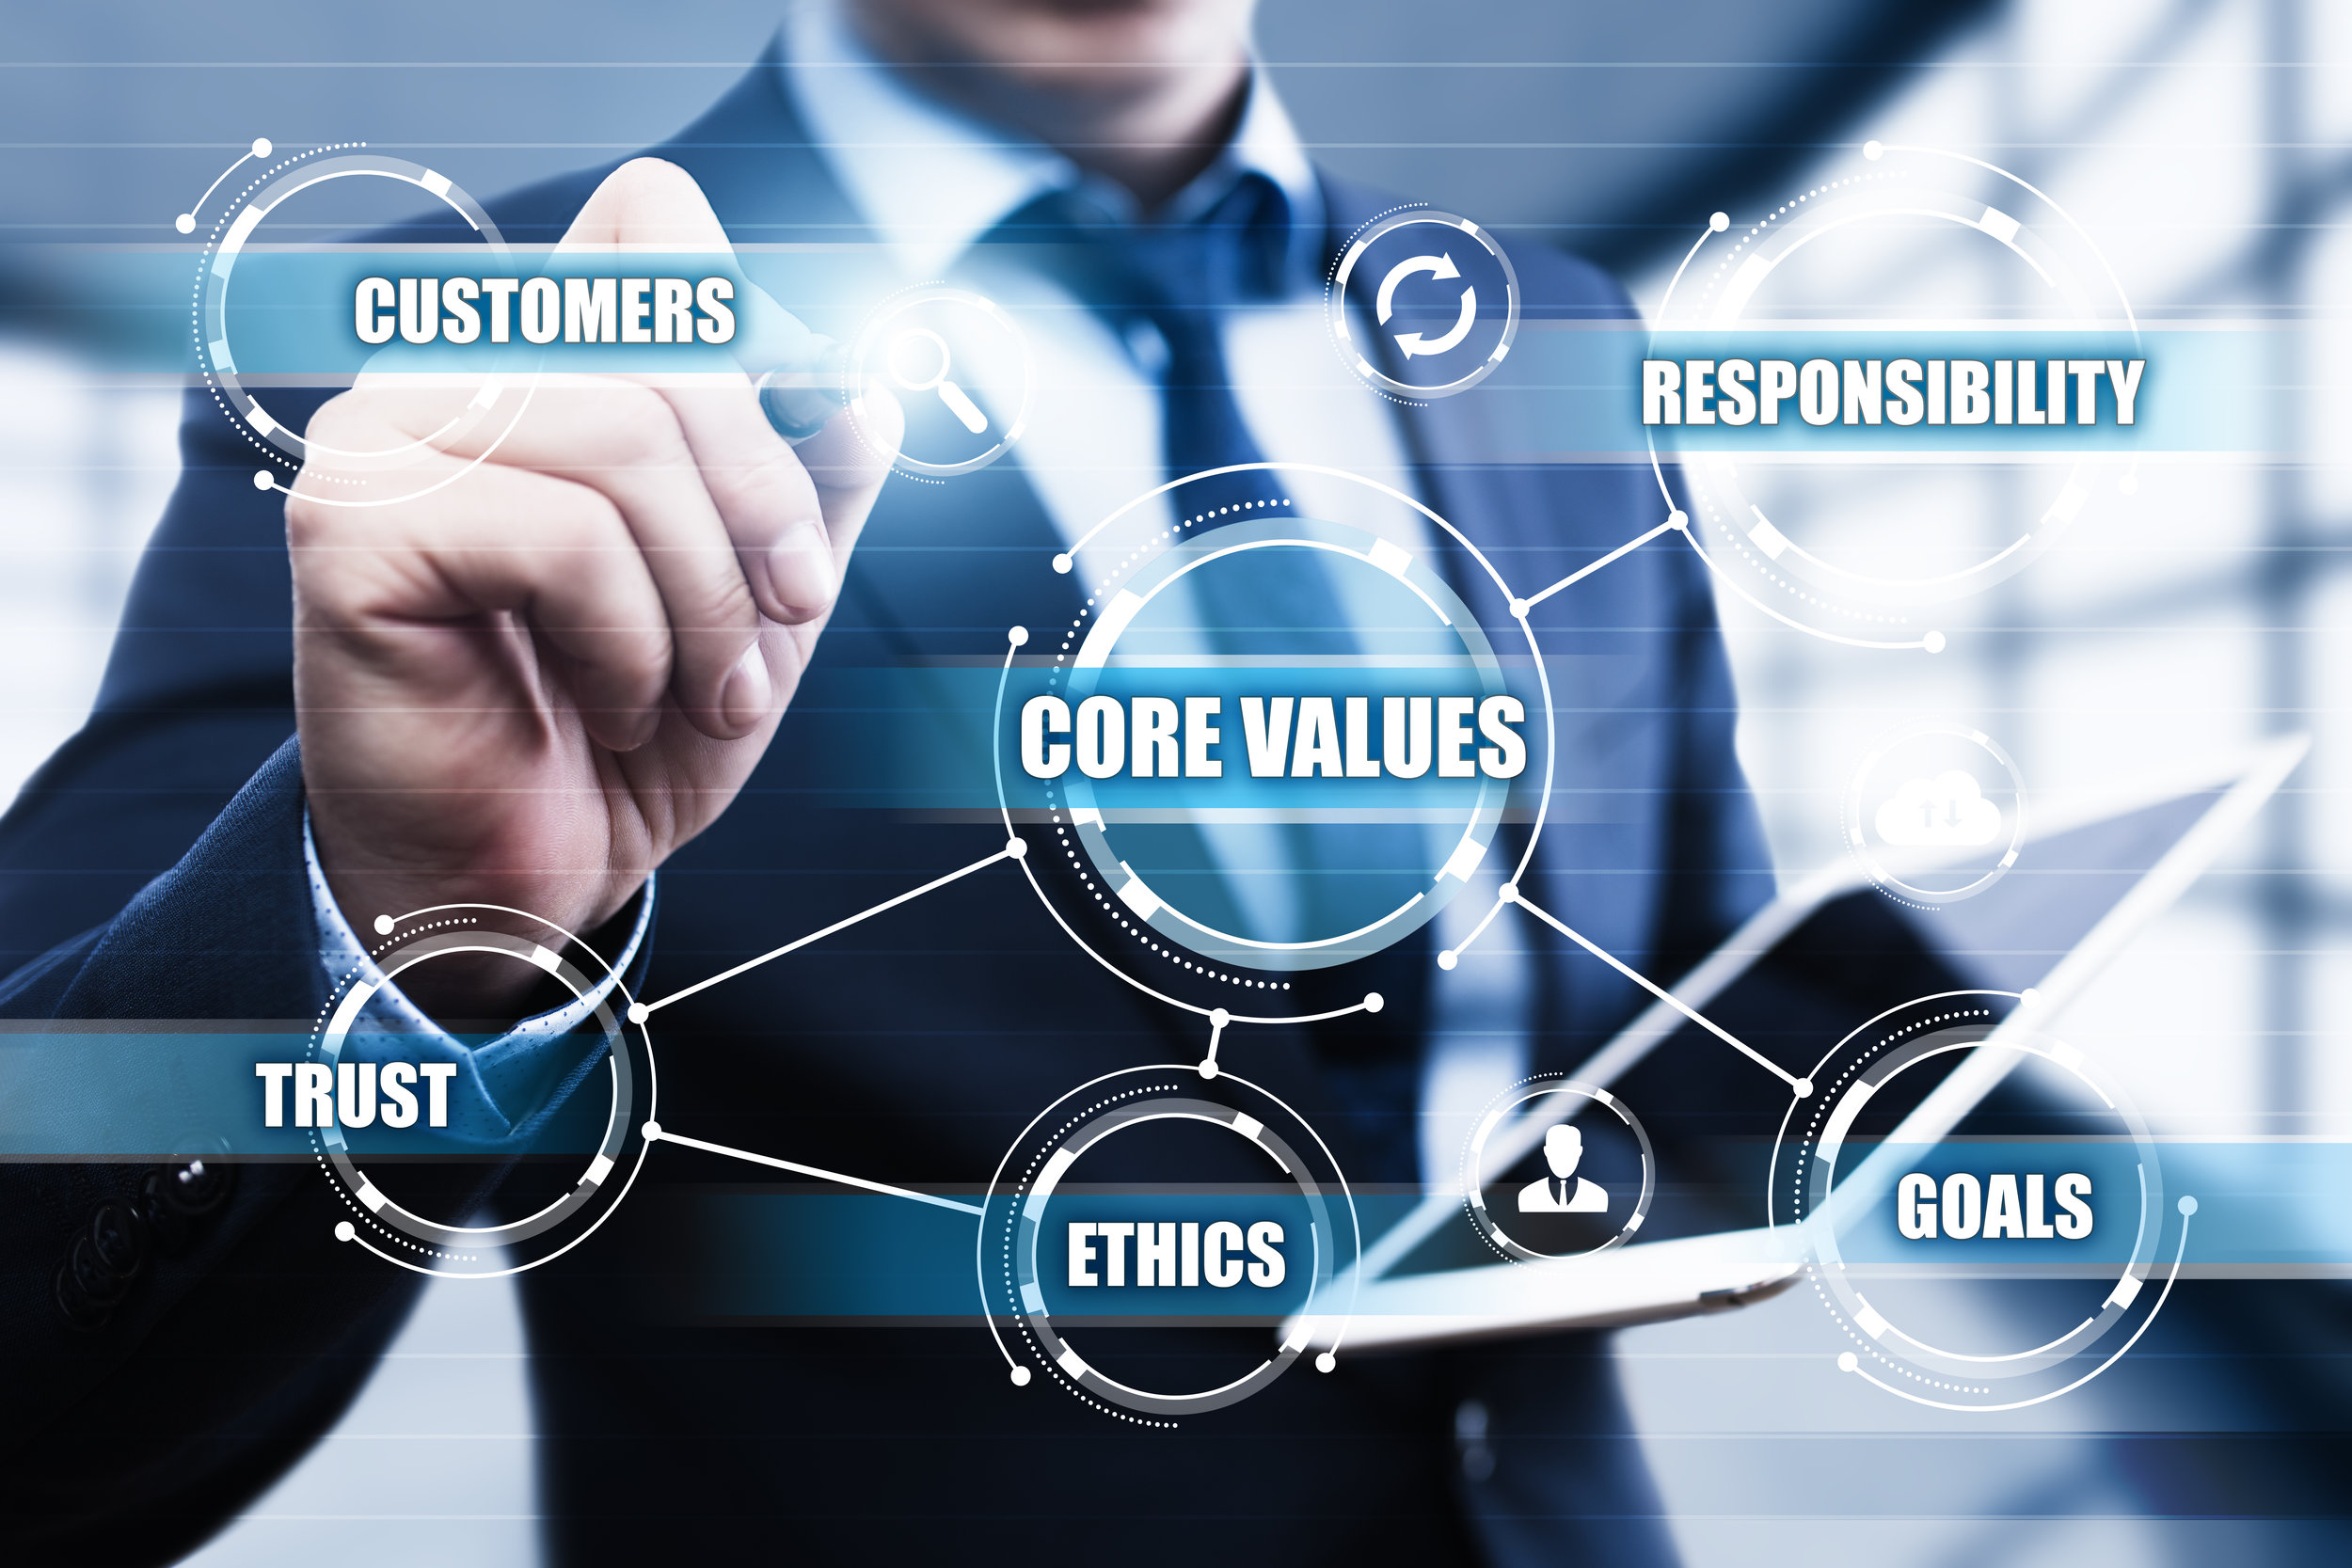 5-business-development-motivational-professional-training-courses-customerservice-values-thecompanycode-nataliasanchidrian-october2018.jpg